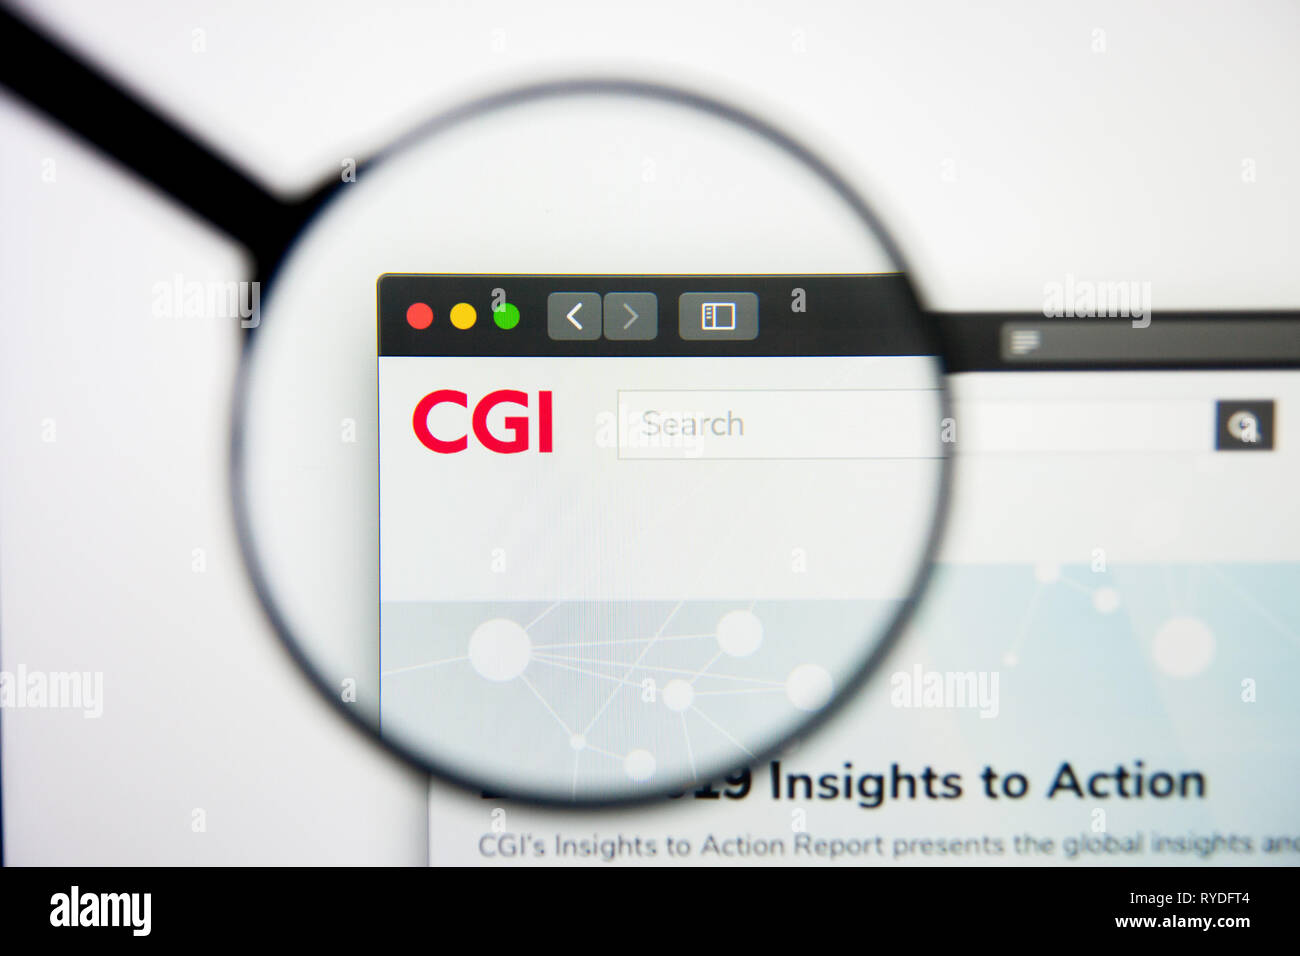 Los Angeles, Kalifornien, USA - 5. März 2019: CGI Group Website Homepage. CGI Group Logo sichtbar auf dem Display, Illustrative Editorial Stockbild